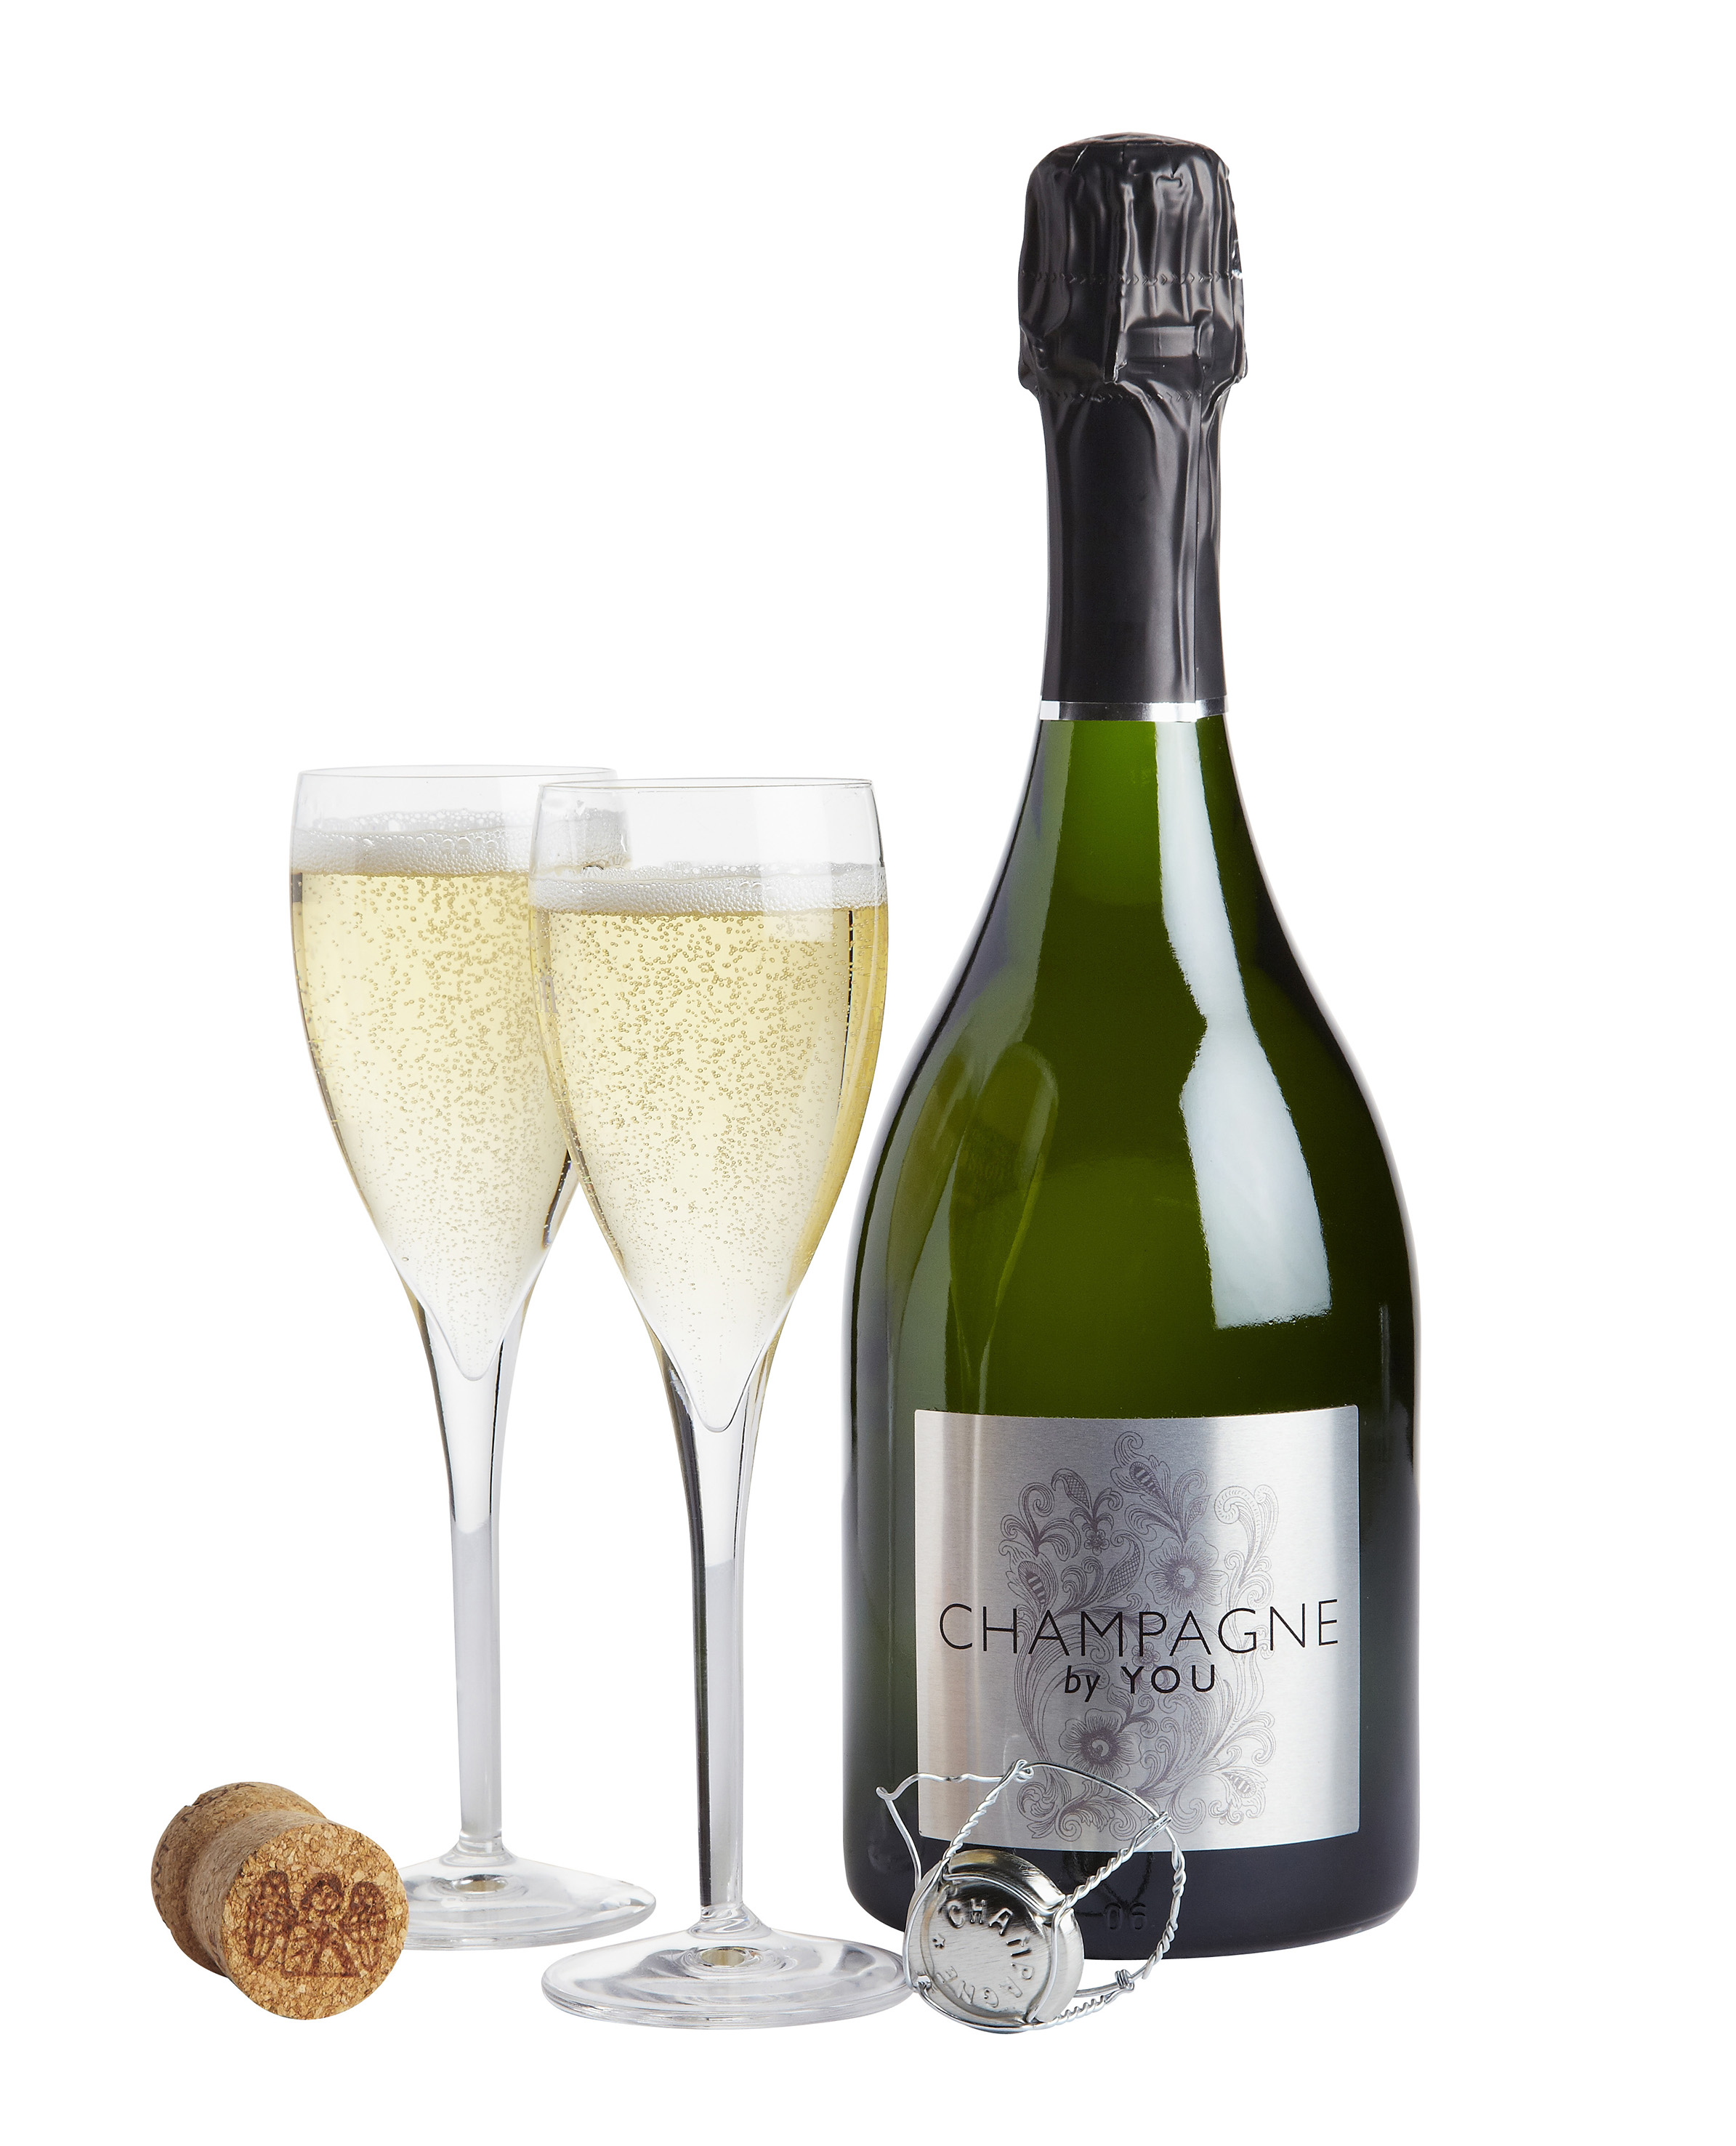 Christmas gift ideas: Champagne by you